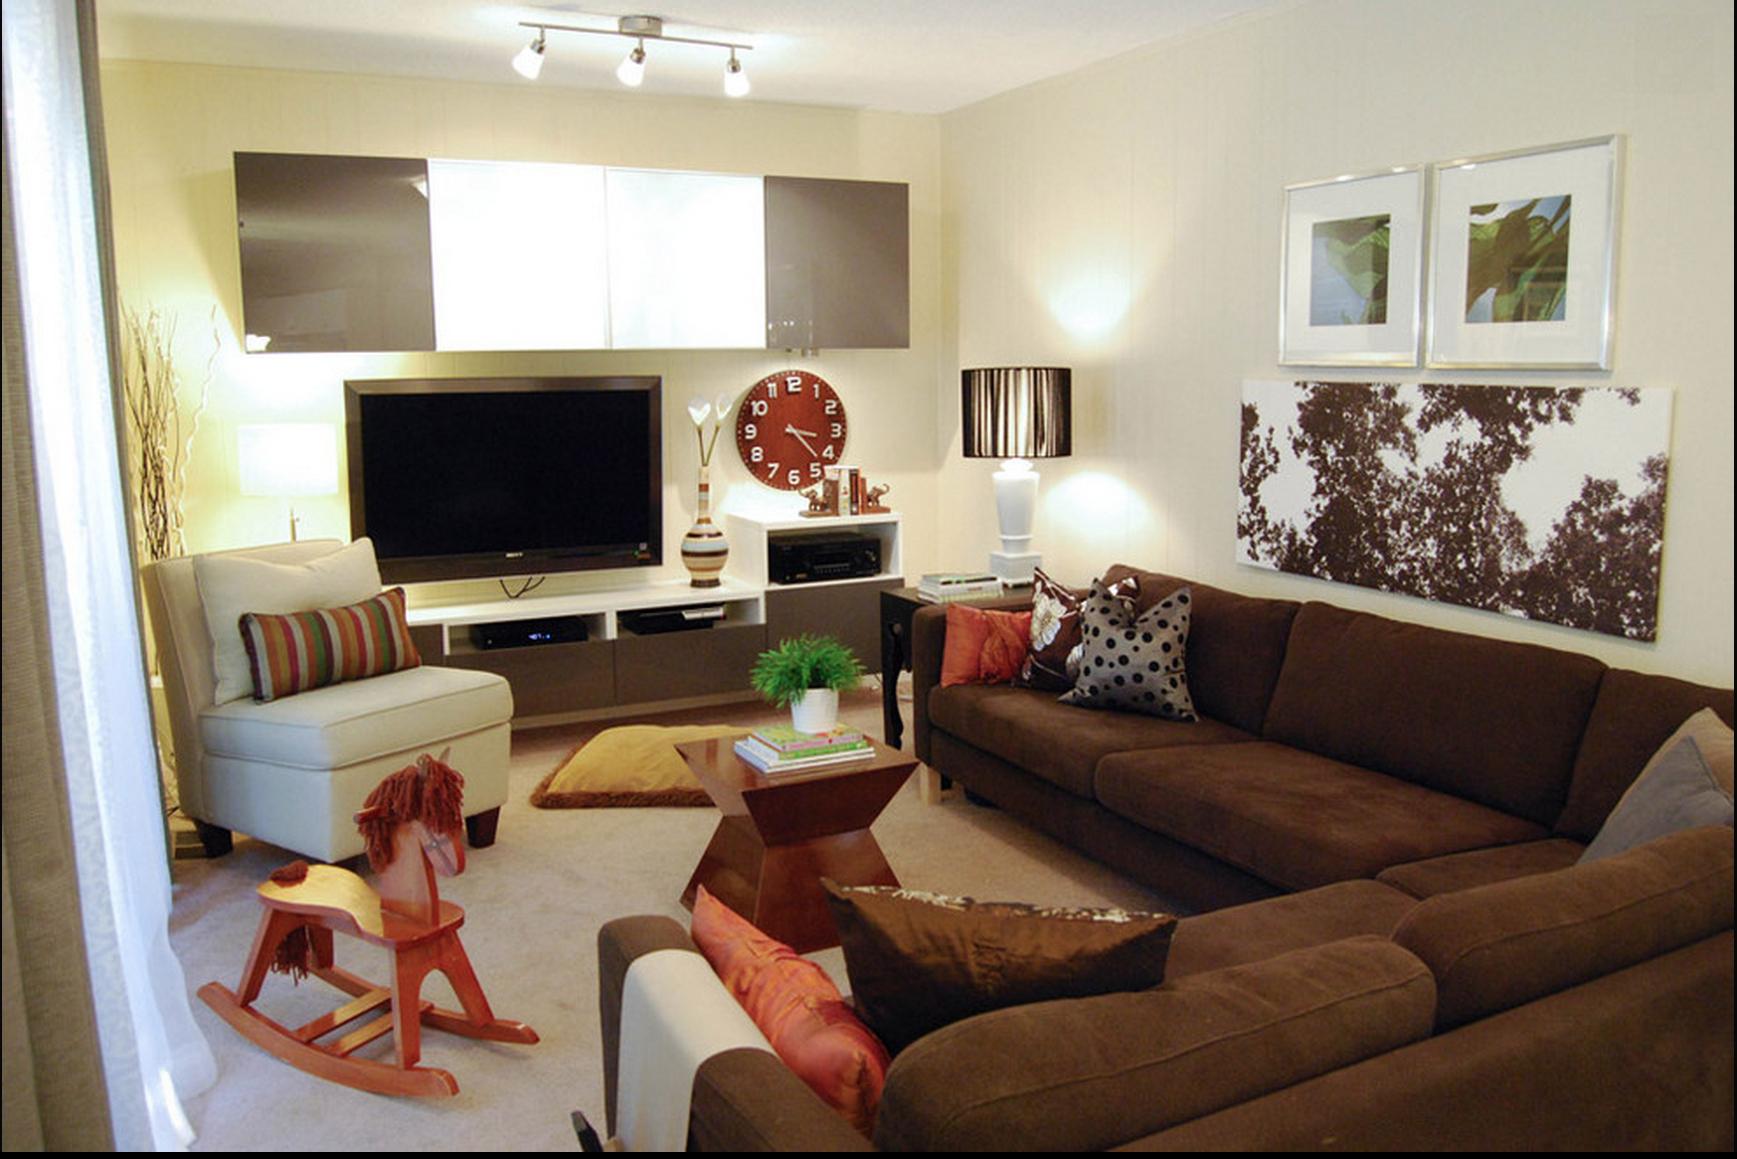 How To Decorate A Family Room With Dark Brown Couches Contemporary Decor Familyroom Brown Couch Just Decorate